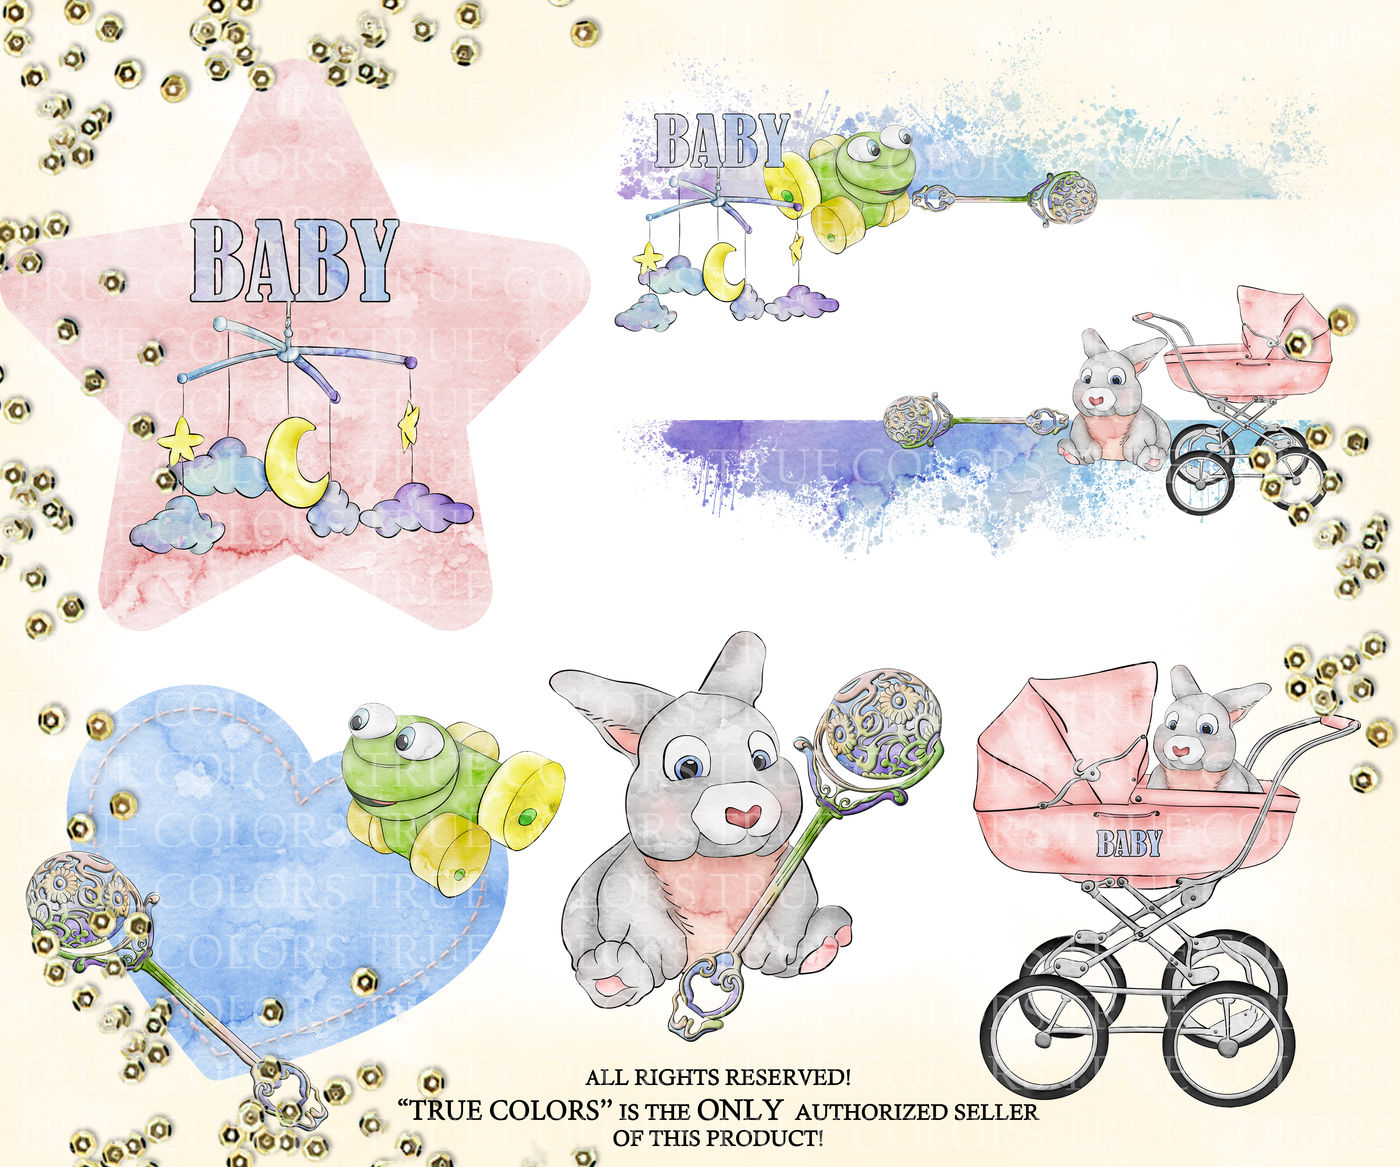 Hush little baby clipart clip art free library Hush Little Baby Clip Art Fashion Illustration Planner Stickers ... clip art free library